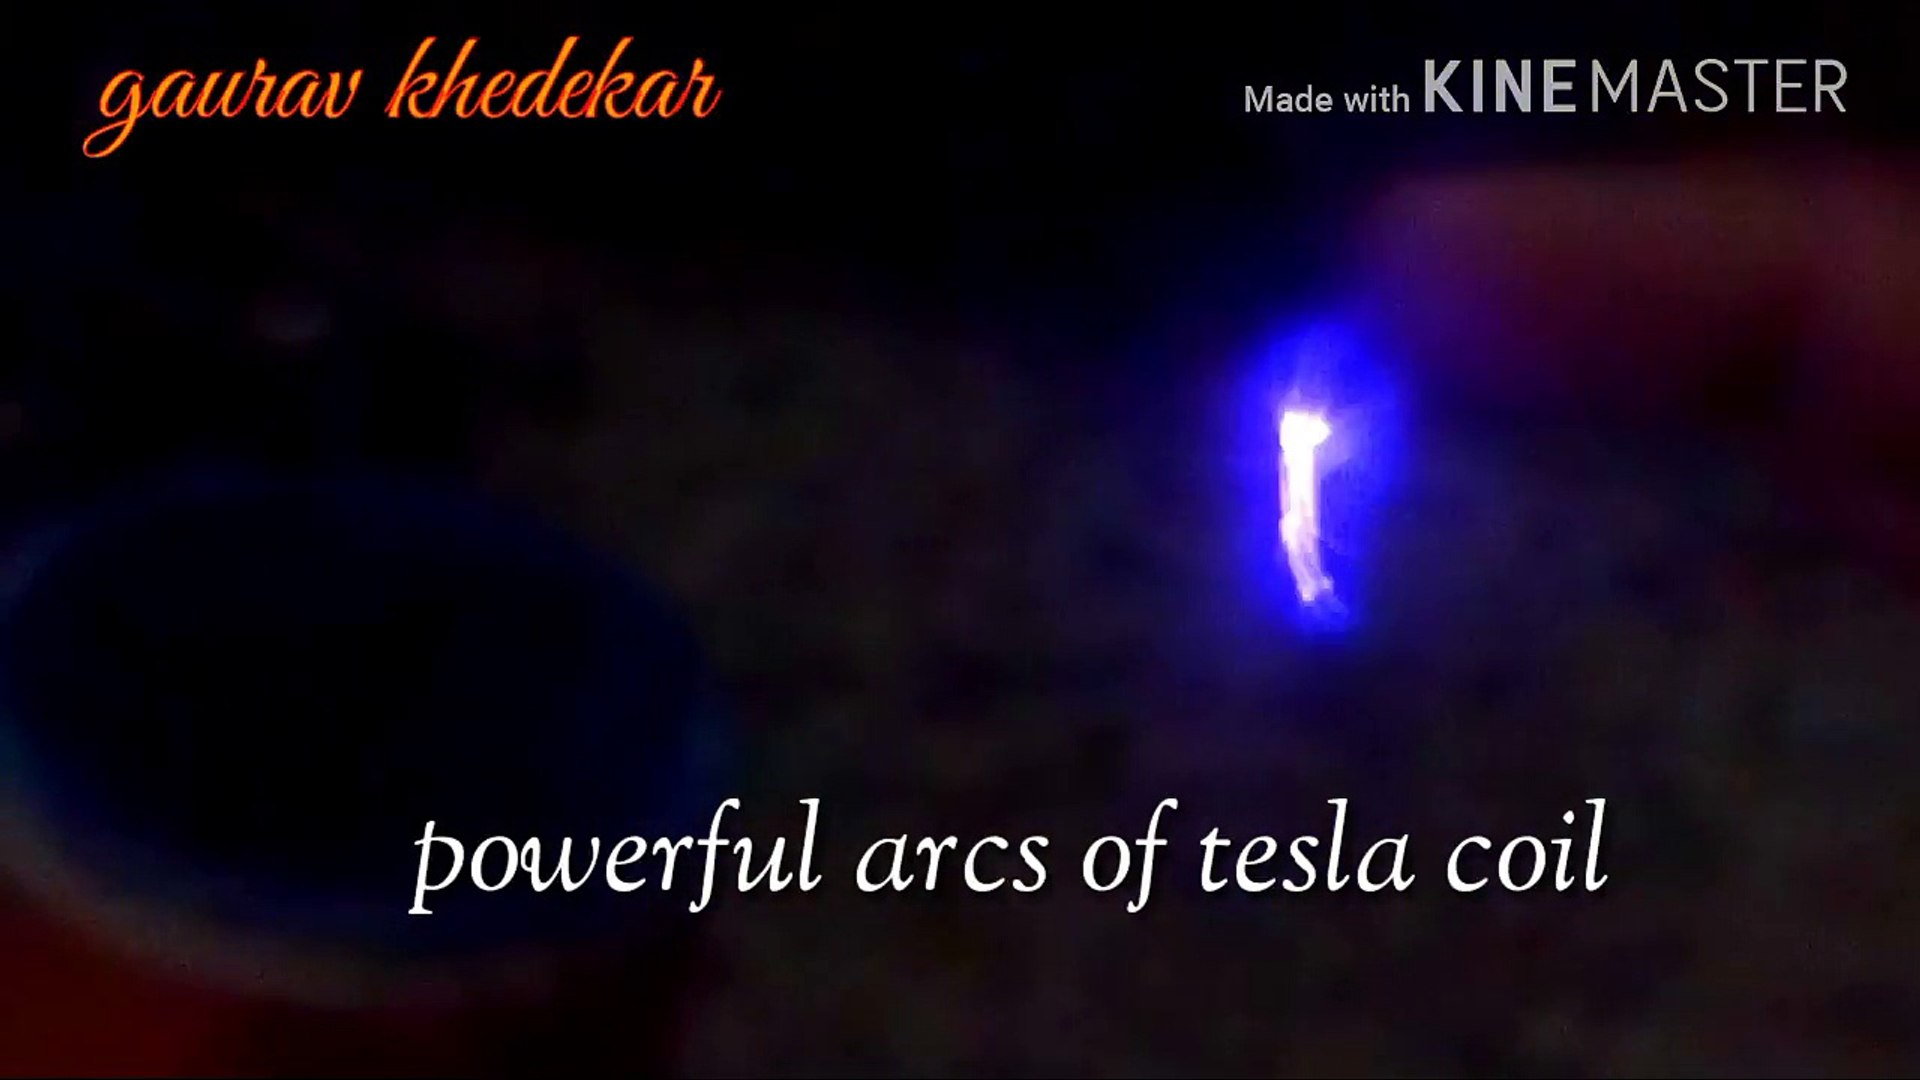 Playing With Powerful Arcs Of Tesla Coil